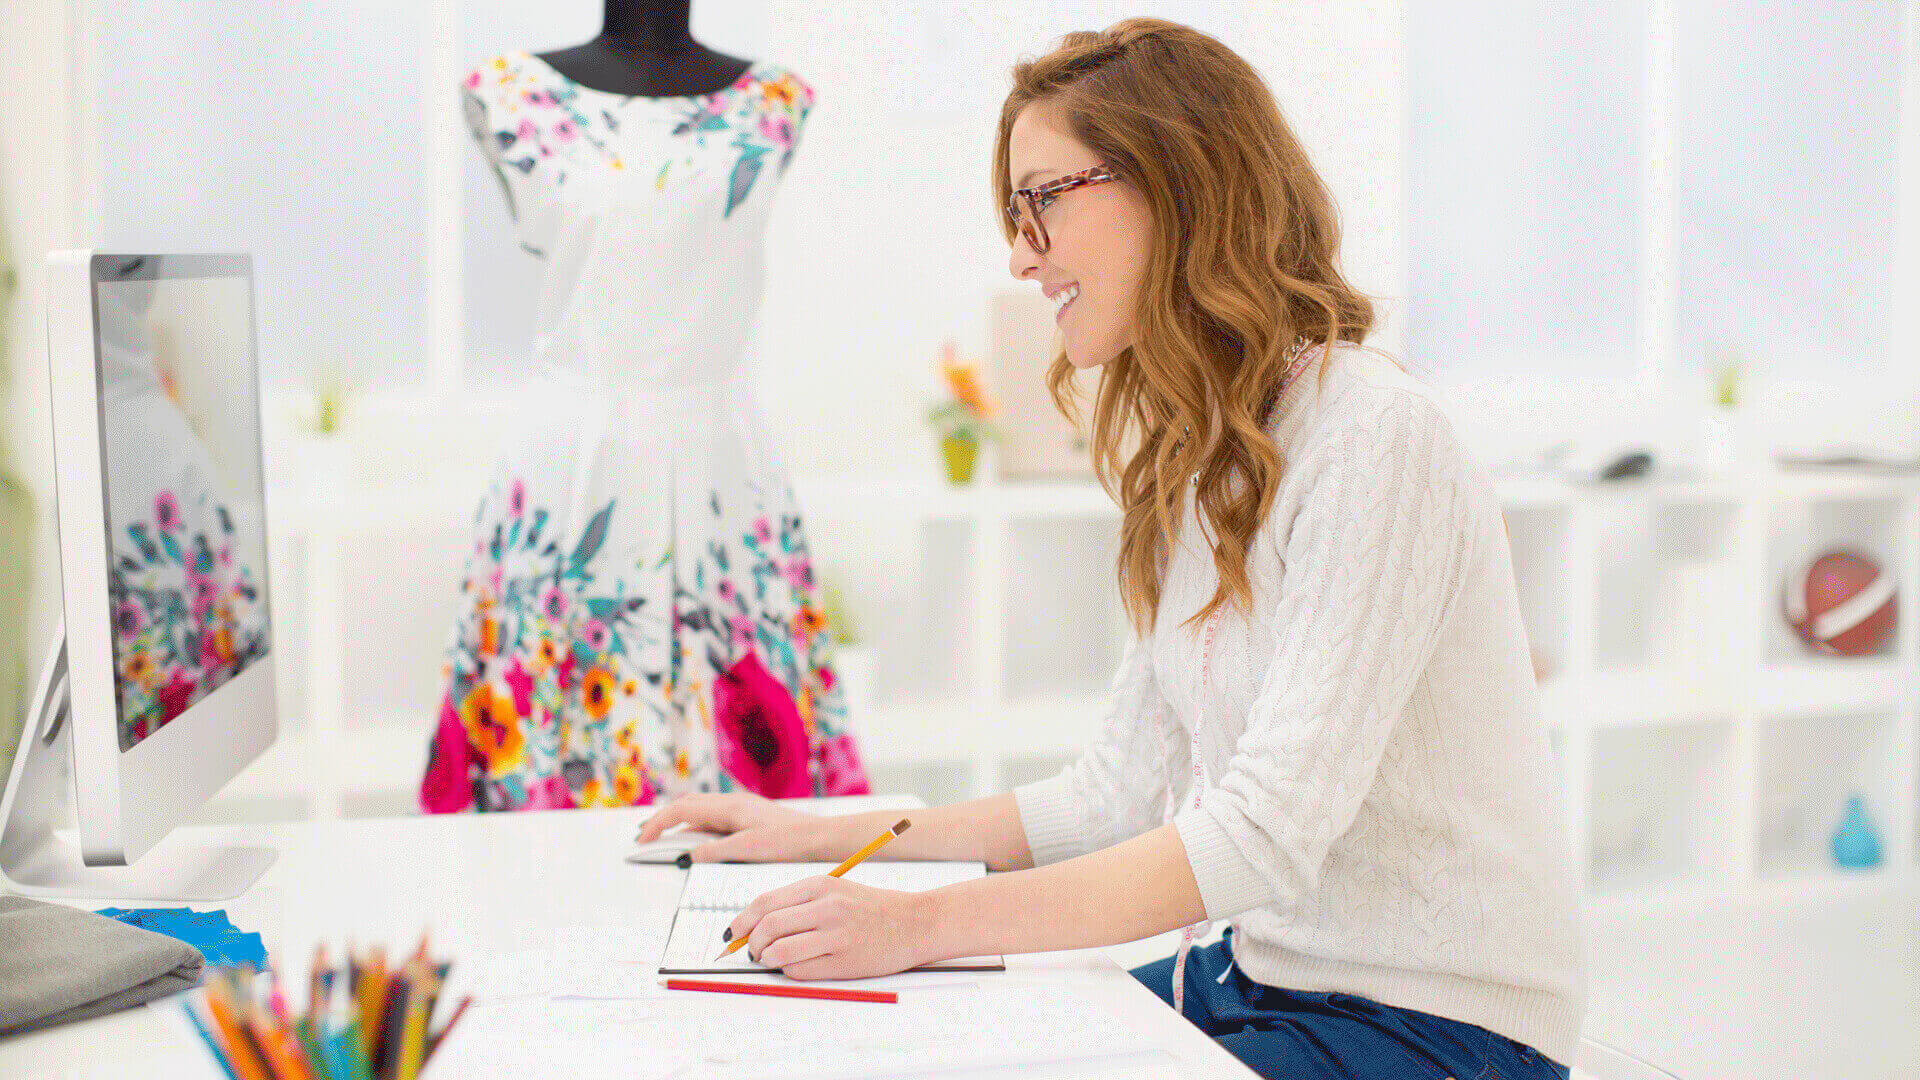 Curso de marketing de moda